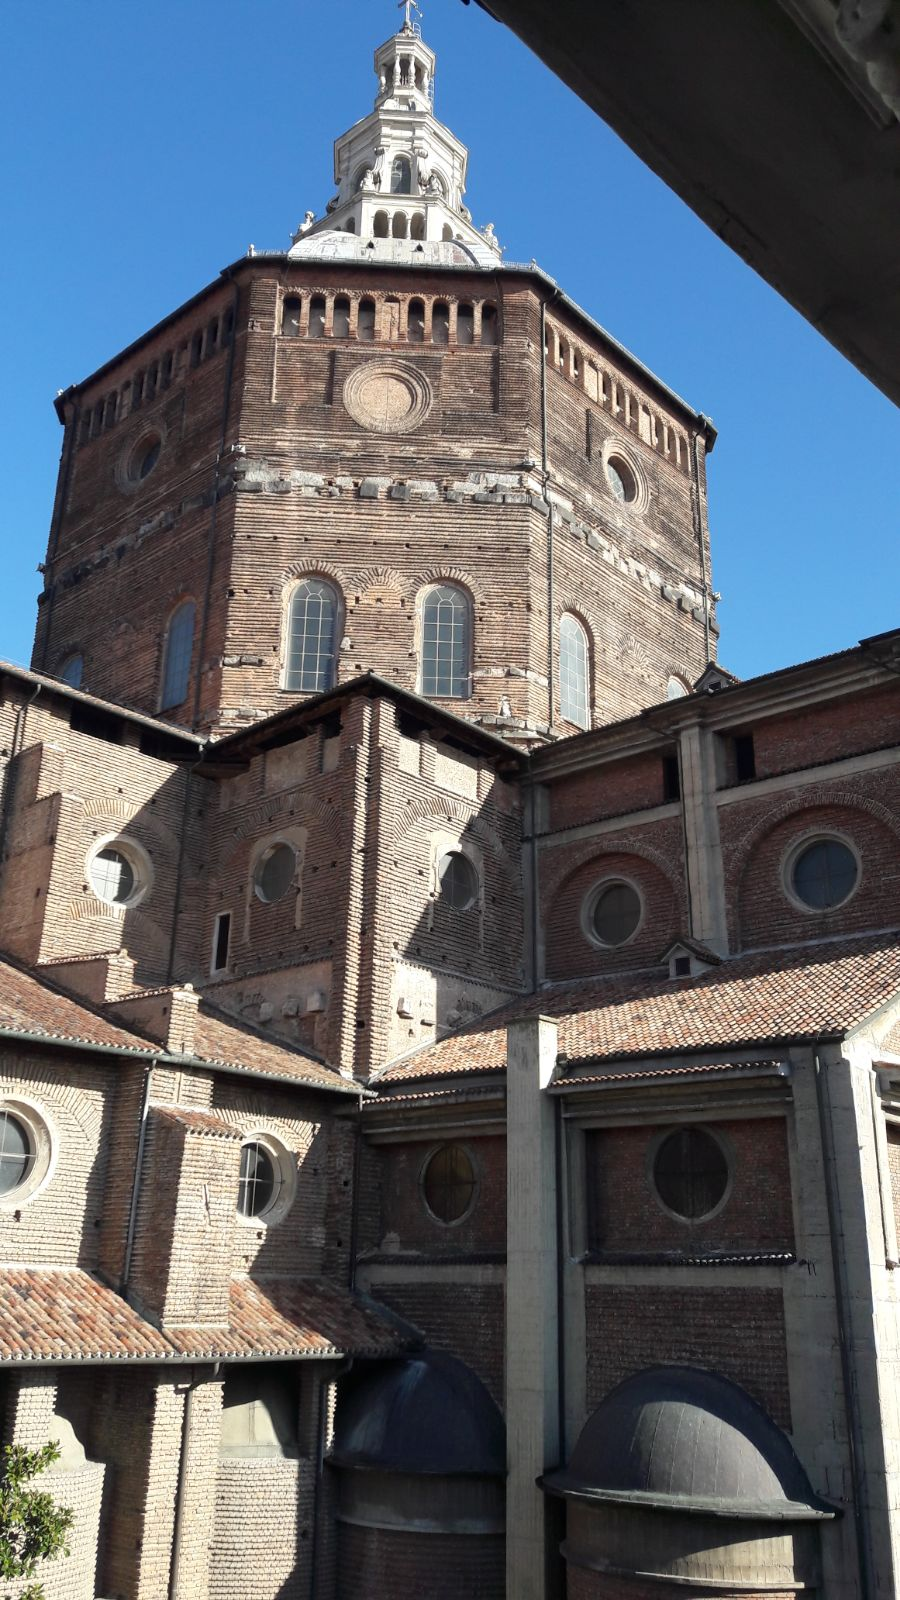 https://www.in-lombardia.it/sites/default/files/accomodation/gallery/103521/41882/2018-01-31-photo-00015562.jpg